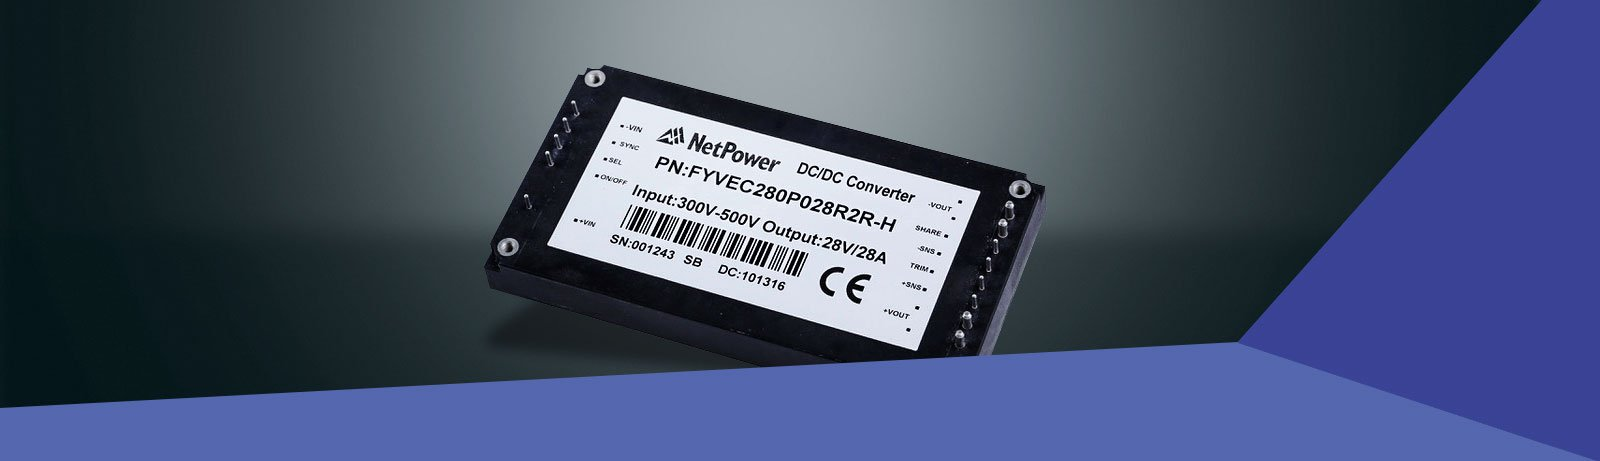 NetPower – Rugged DC/DC Converters